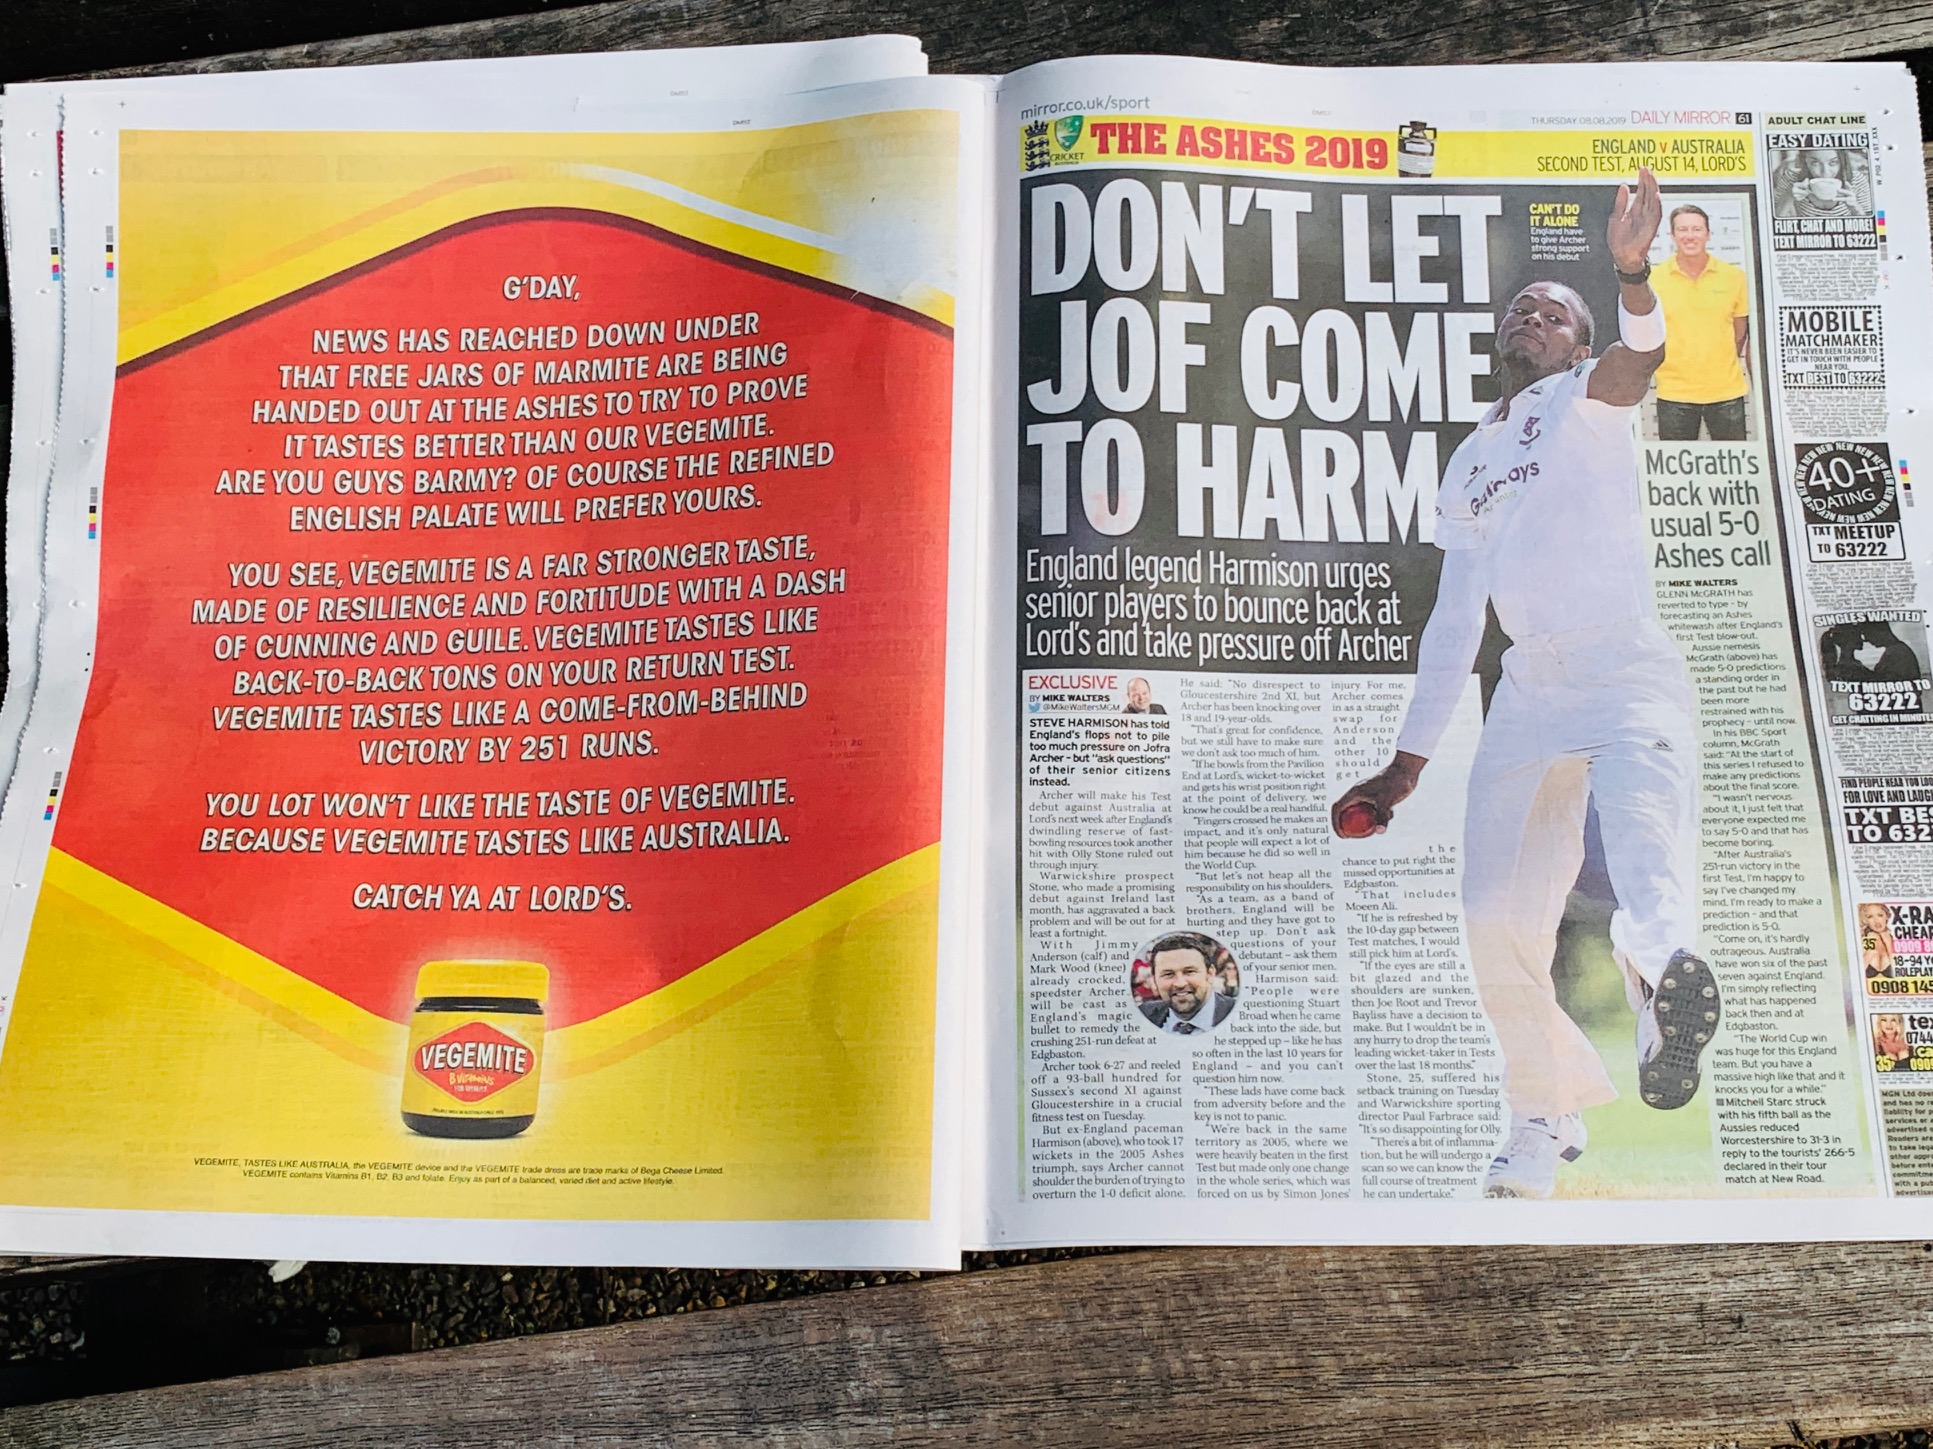 Aust vs England hostilities spread beyond the cricket field in new Vegemite ad via Thinkerbell